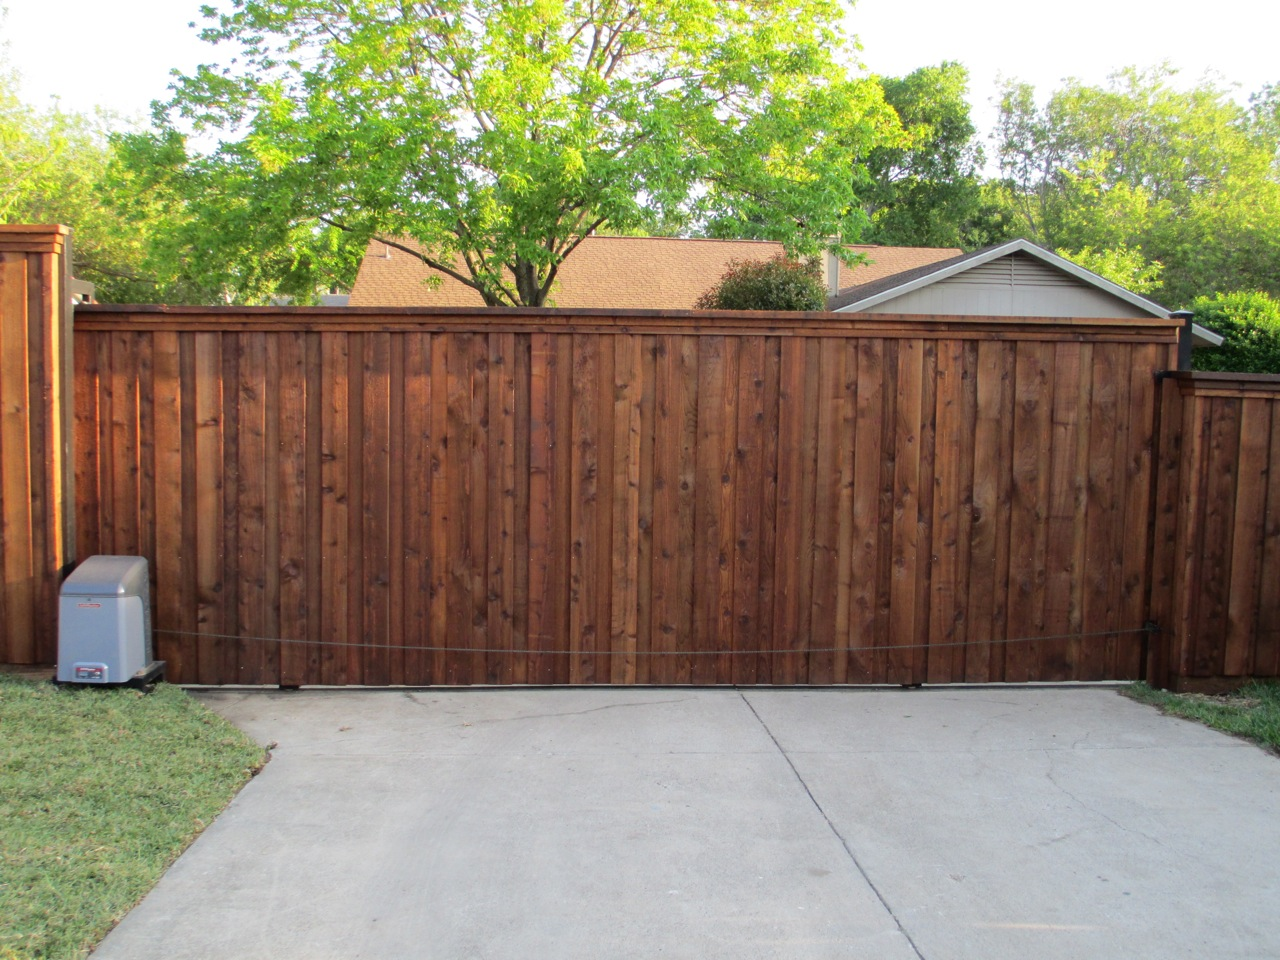 wood gates - wood board on board sliding gate at the entrance of concrete driveway